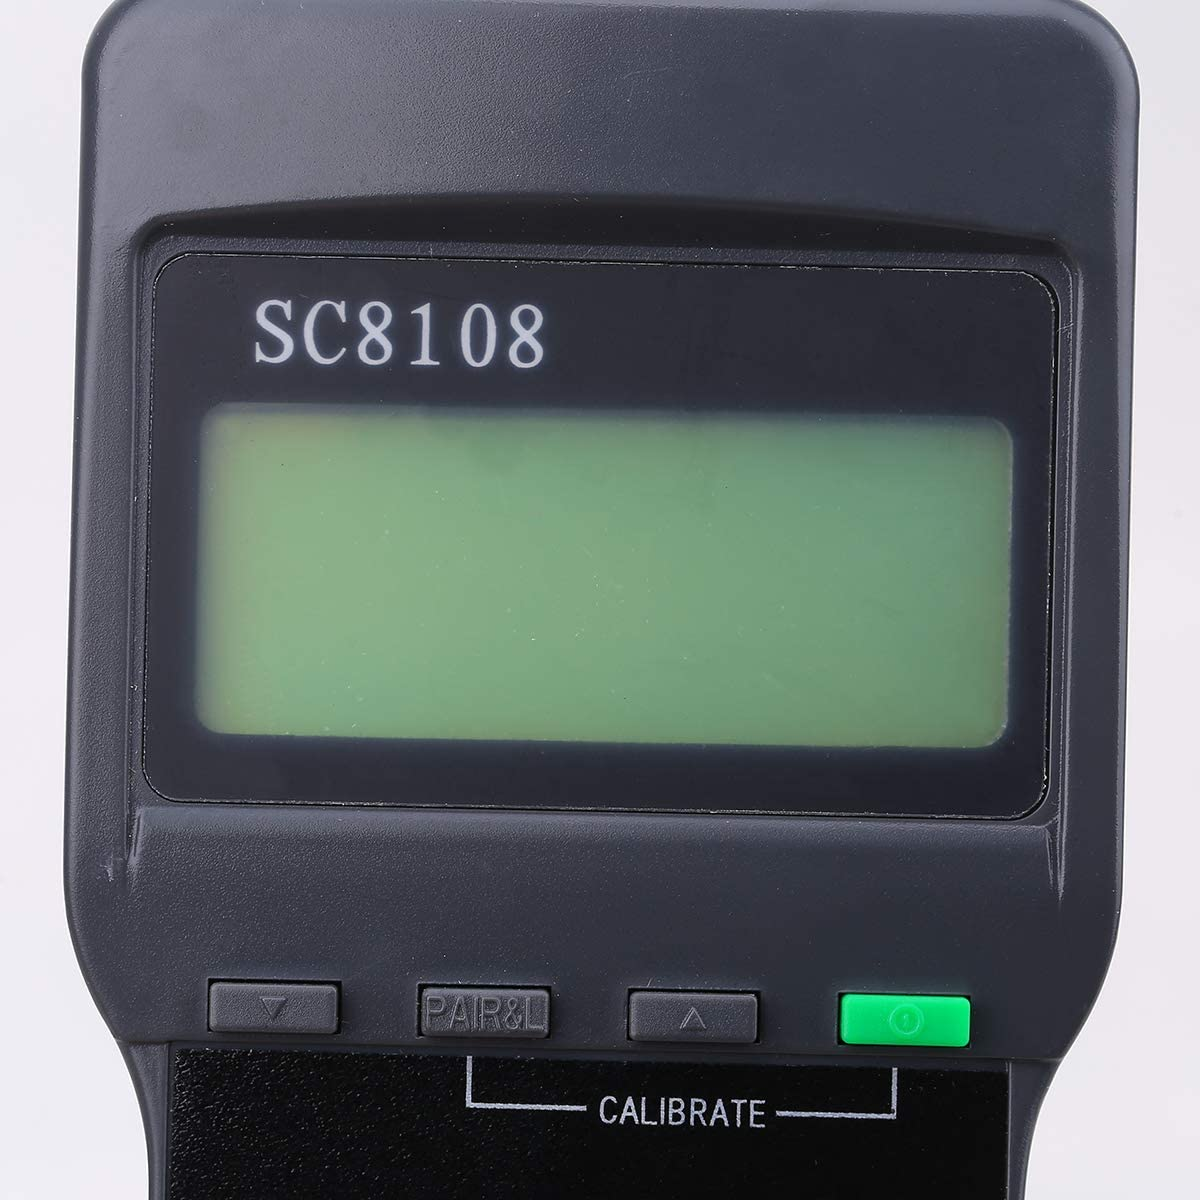 Network Cable Tester SC8108 CAT5 RJ45 LAN Phone Cable Tester Meter